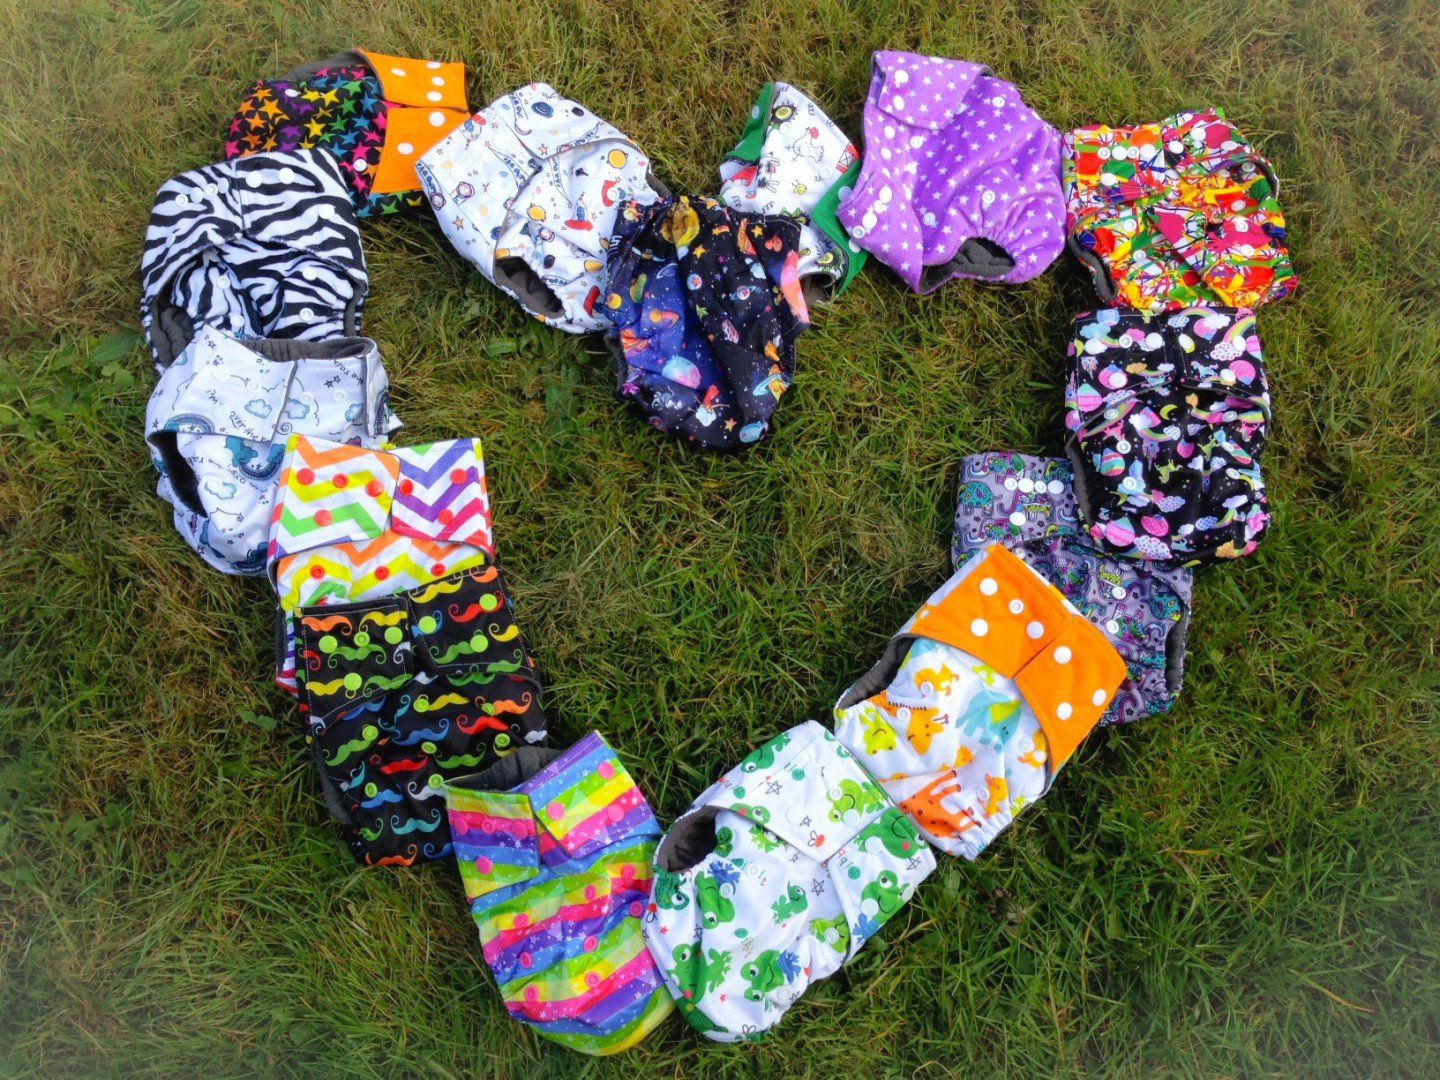 Cloth nappies arranged into a heart shape